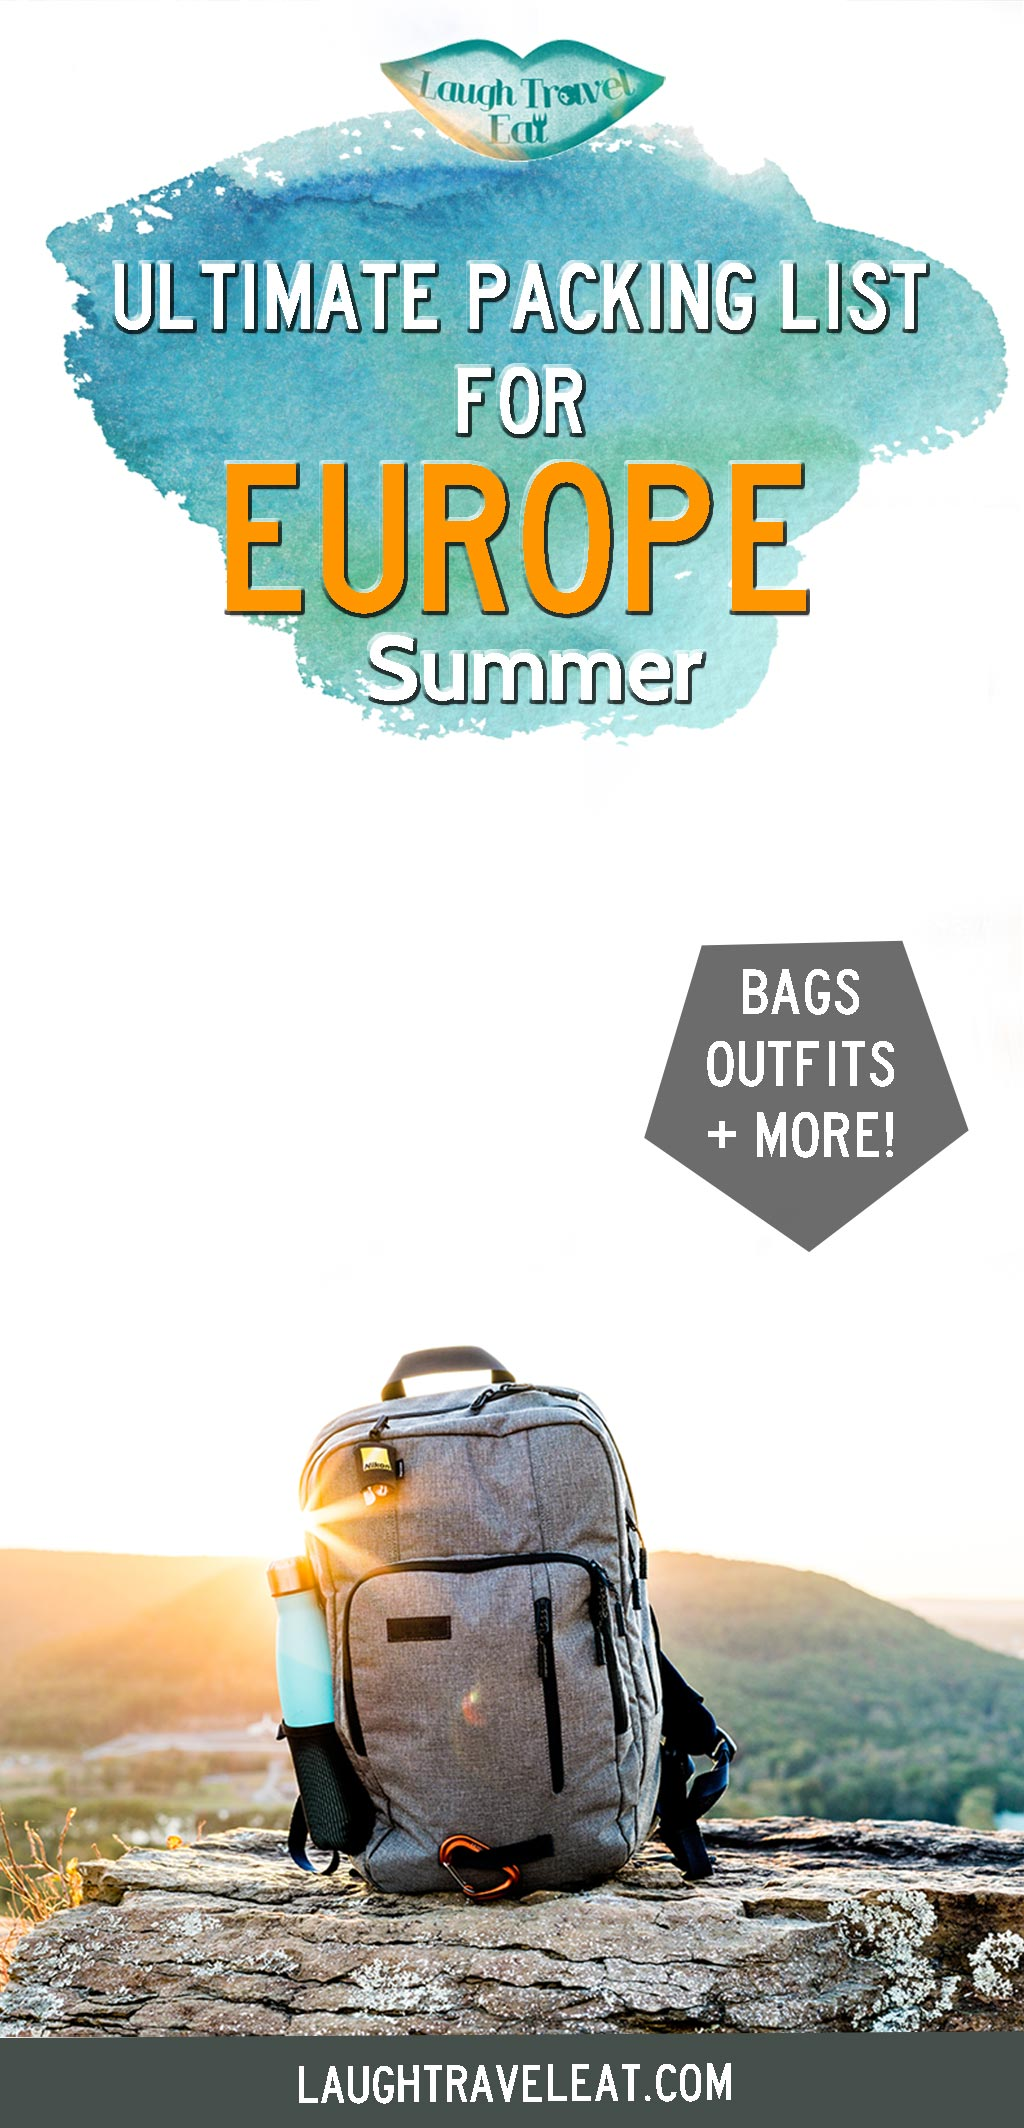 Heading to Europe for summer? Here's a packing list for 3 weeks, including the best luggage, bags, clothes, and essentials #europe #packinglist #summer